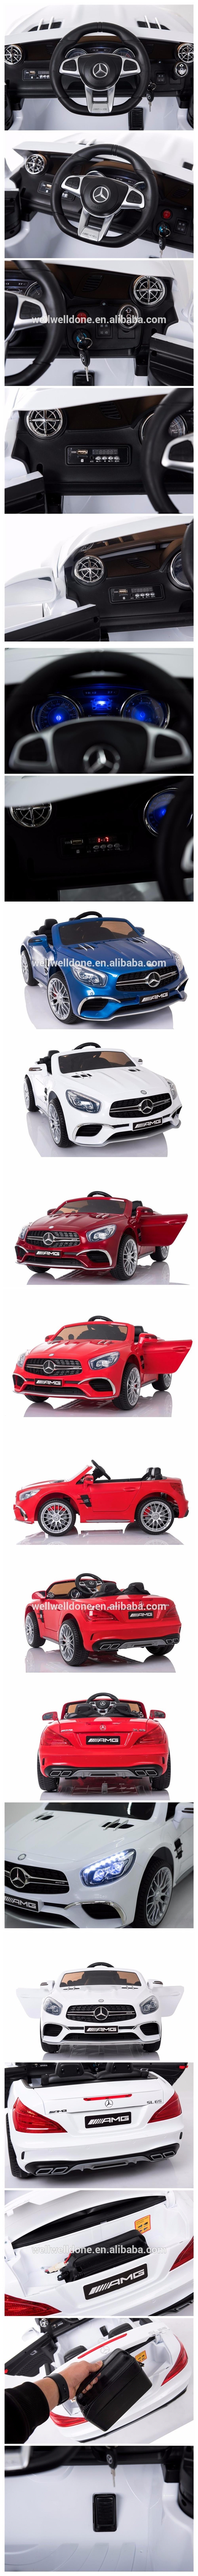 WDXMX602 Mercedes Benz SL65 Licenza Giocattolo Ride on car